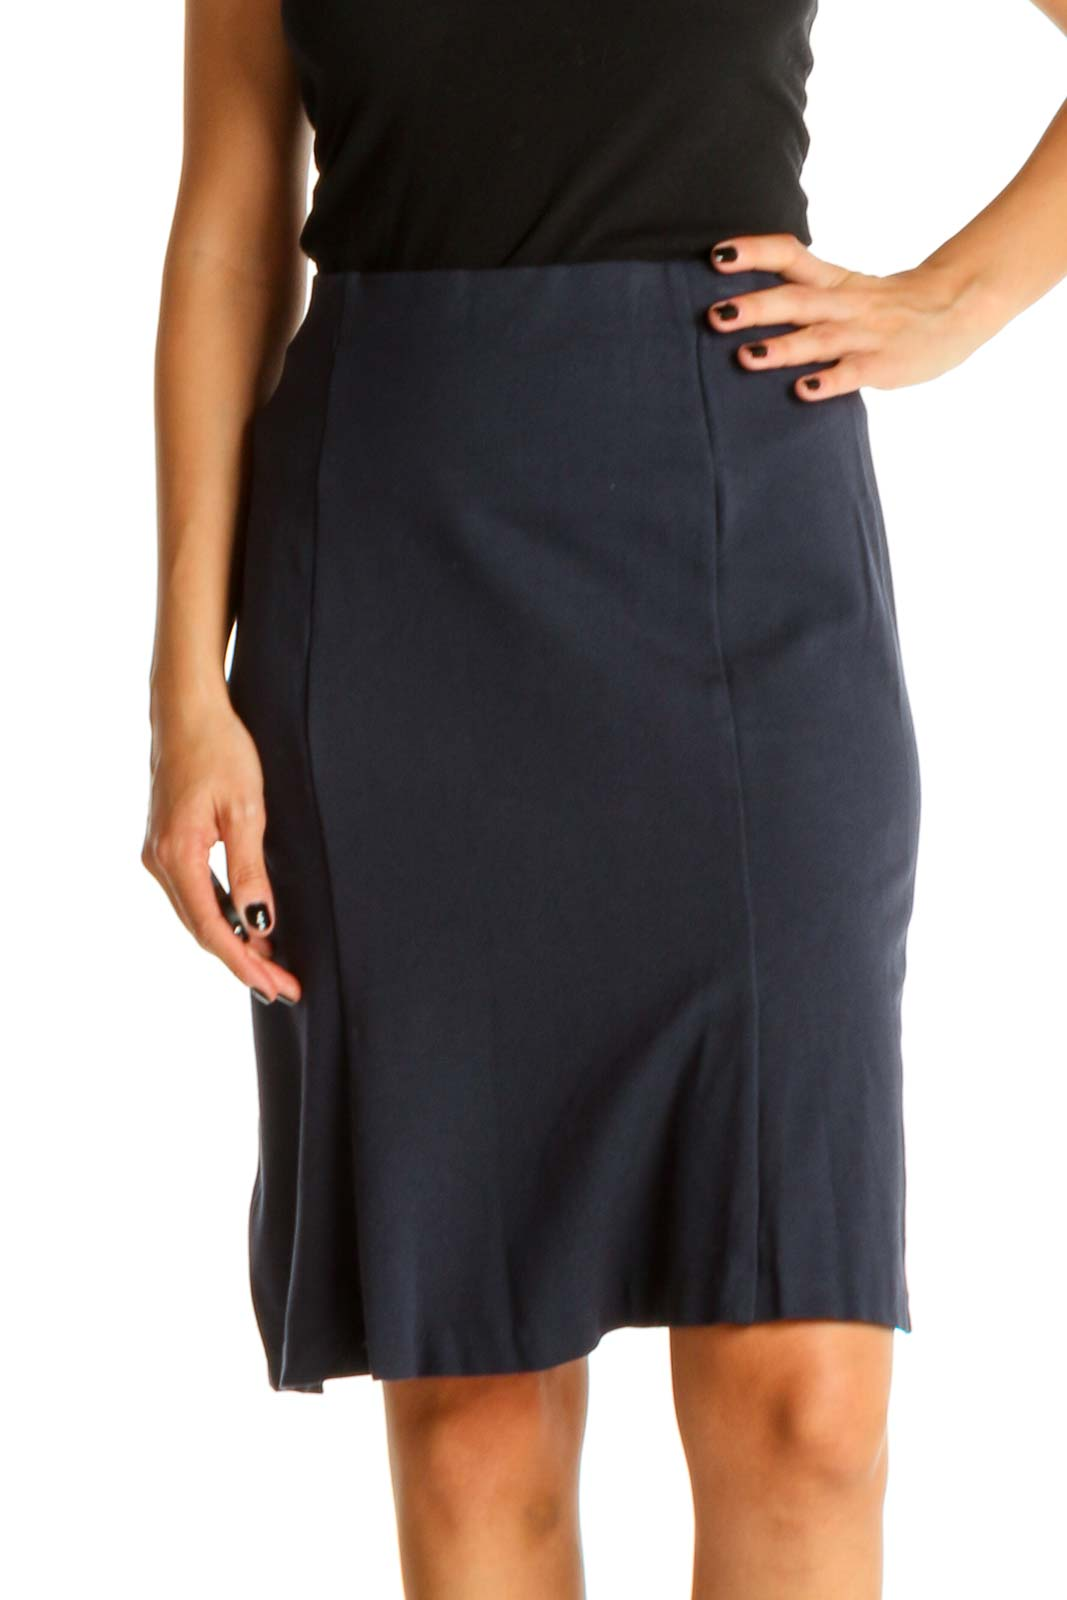 Blue Solid Chic Pencil Skirt Front